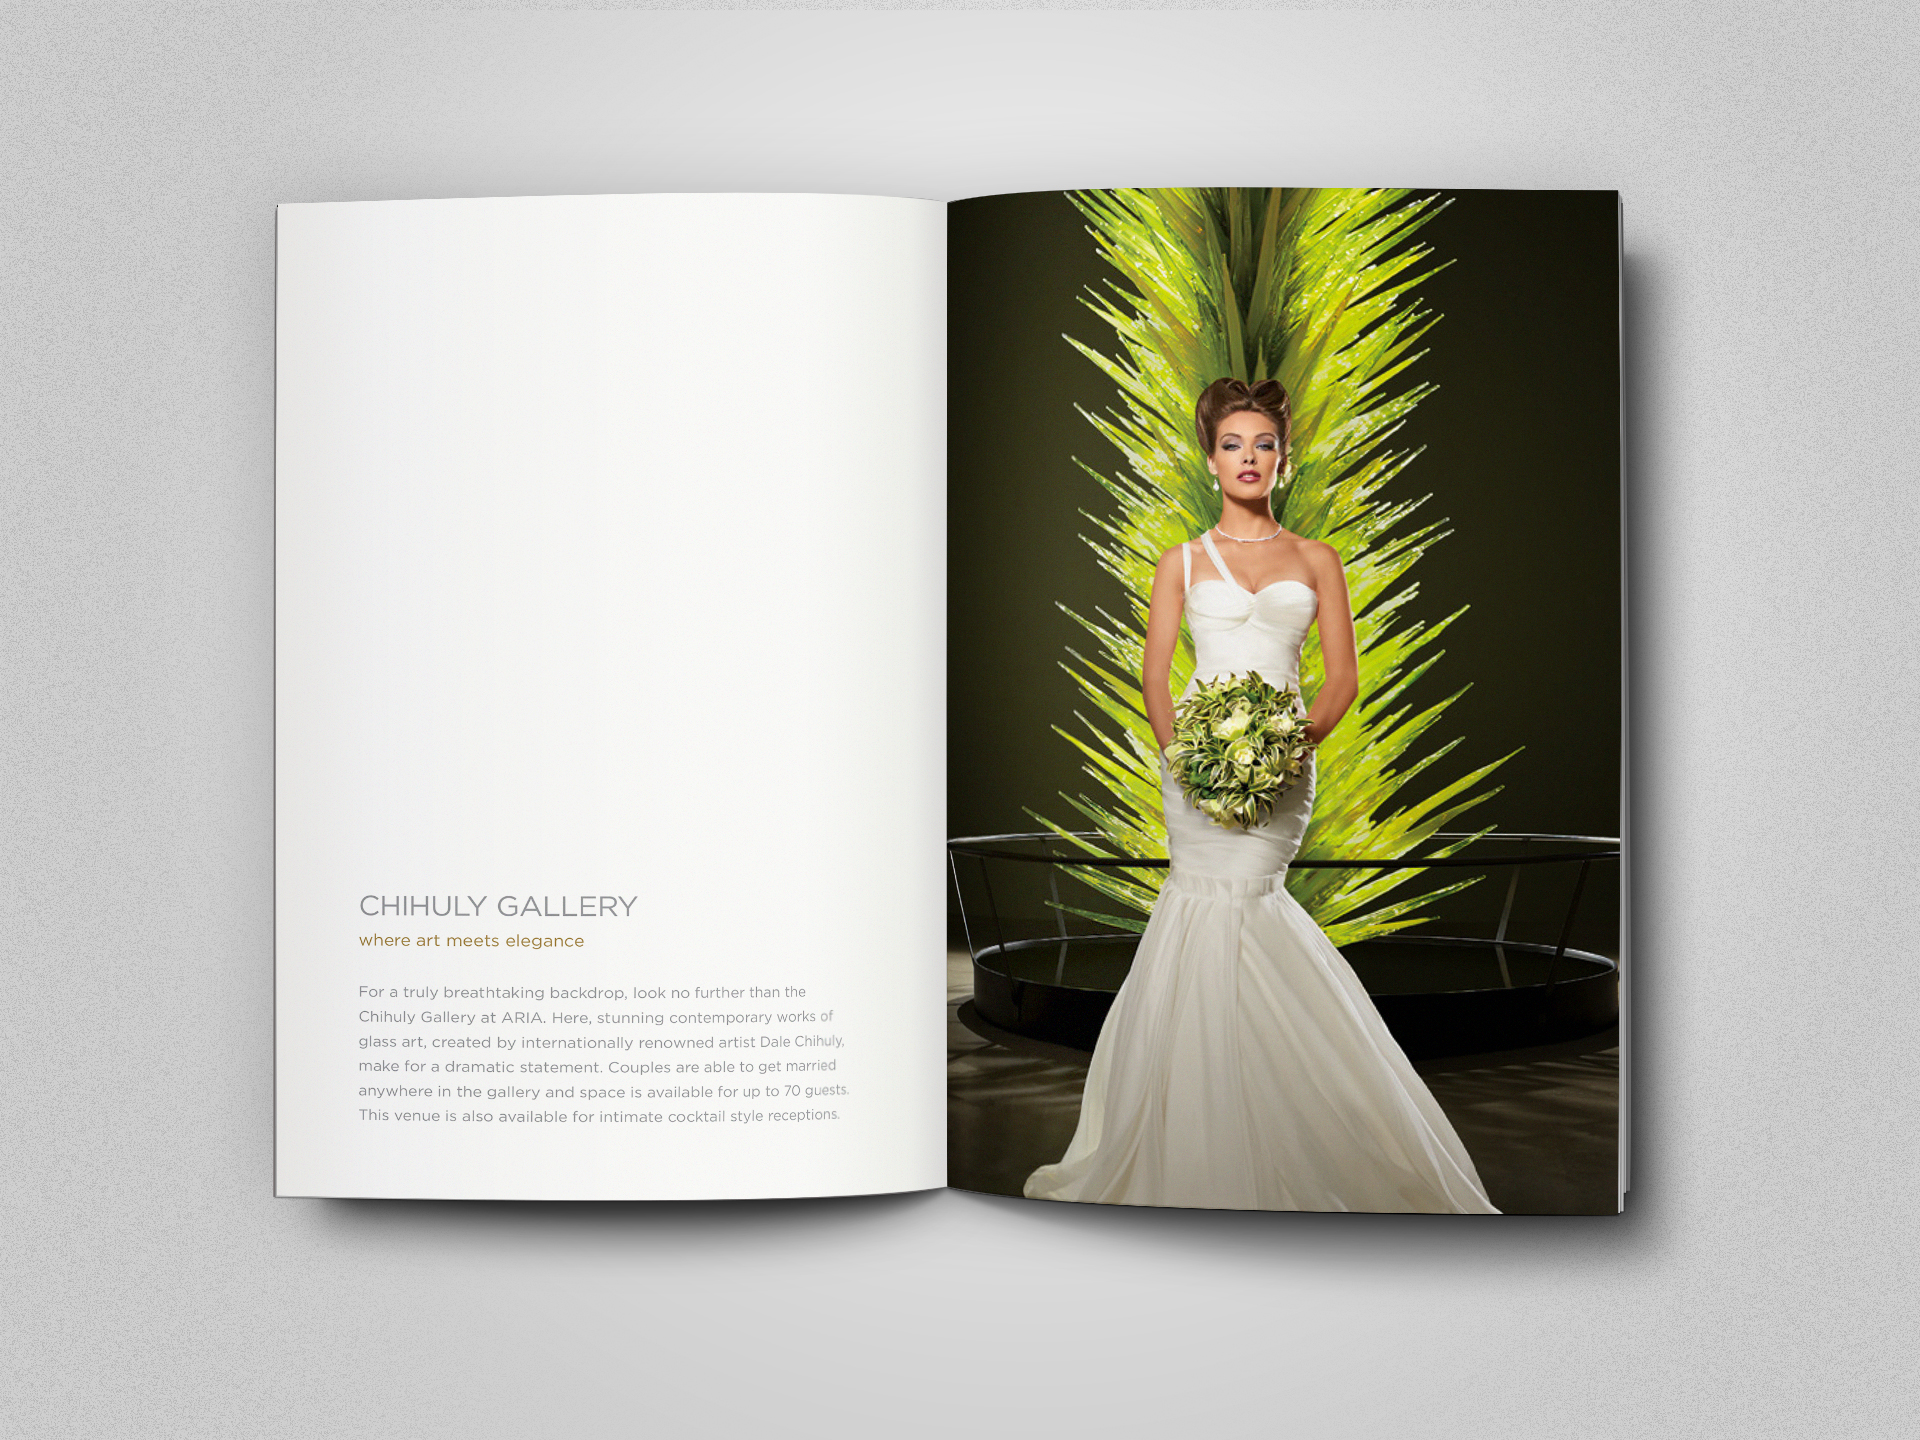 Chihuly sculpture wedding ad